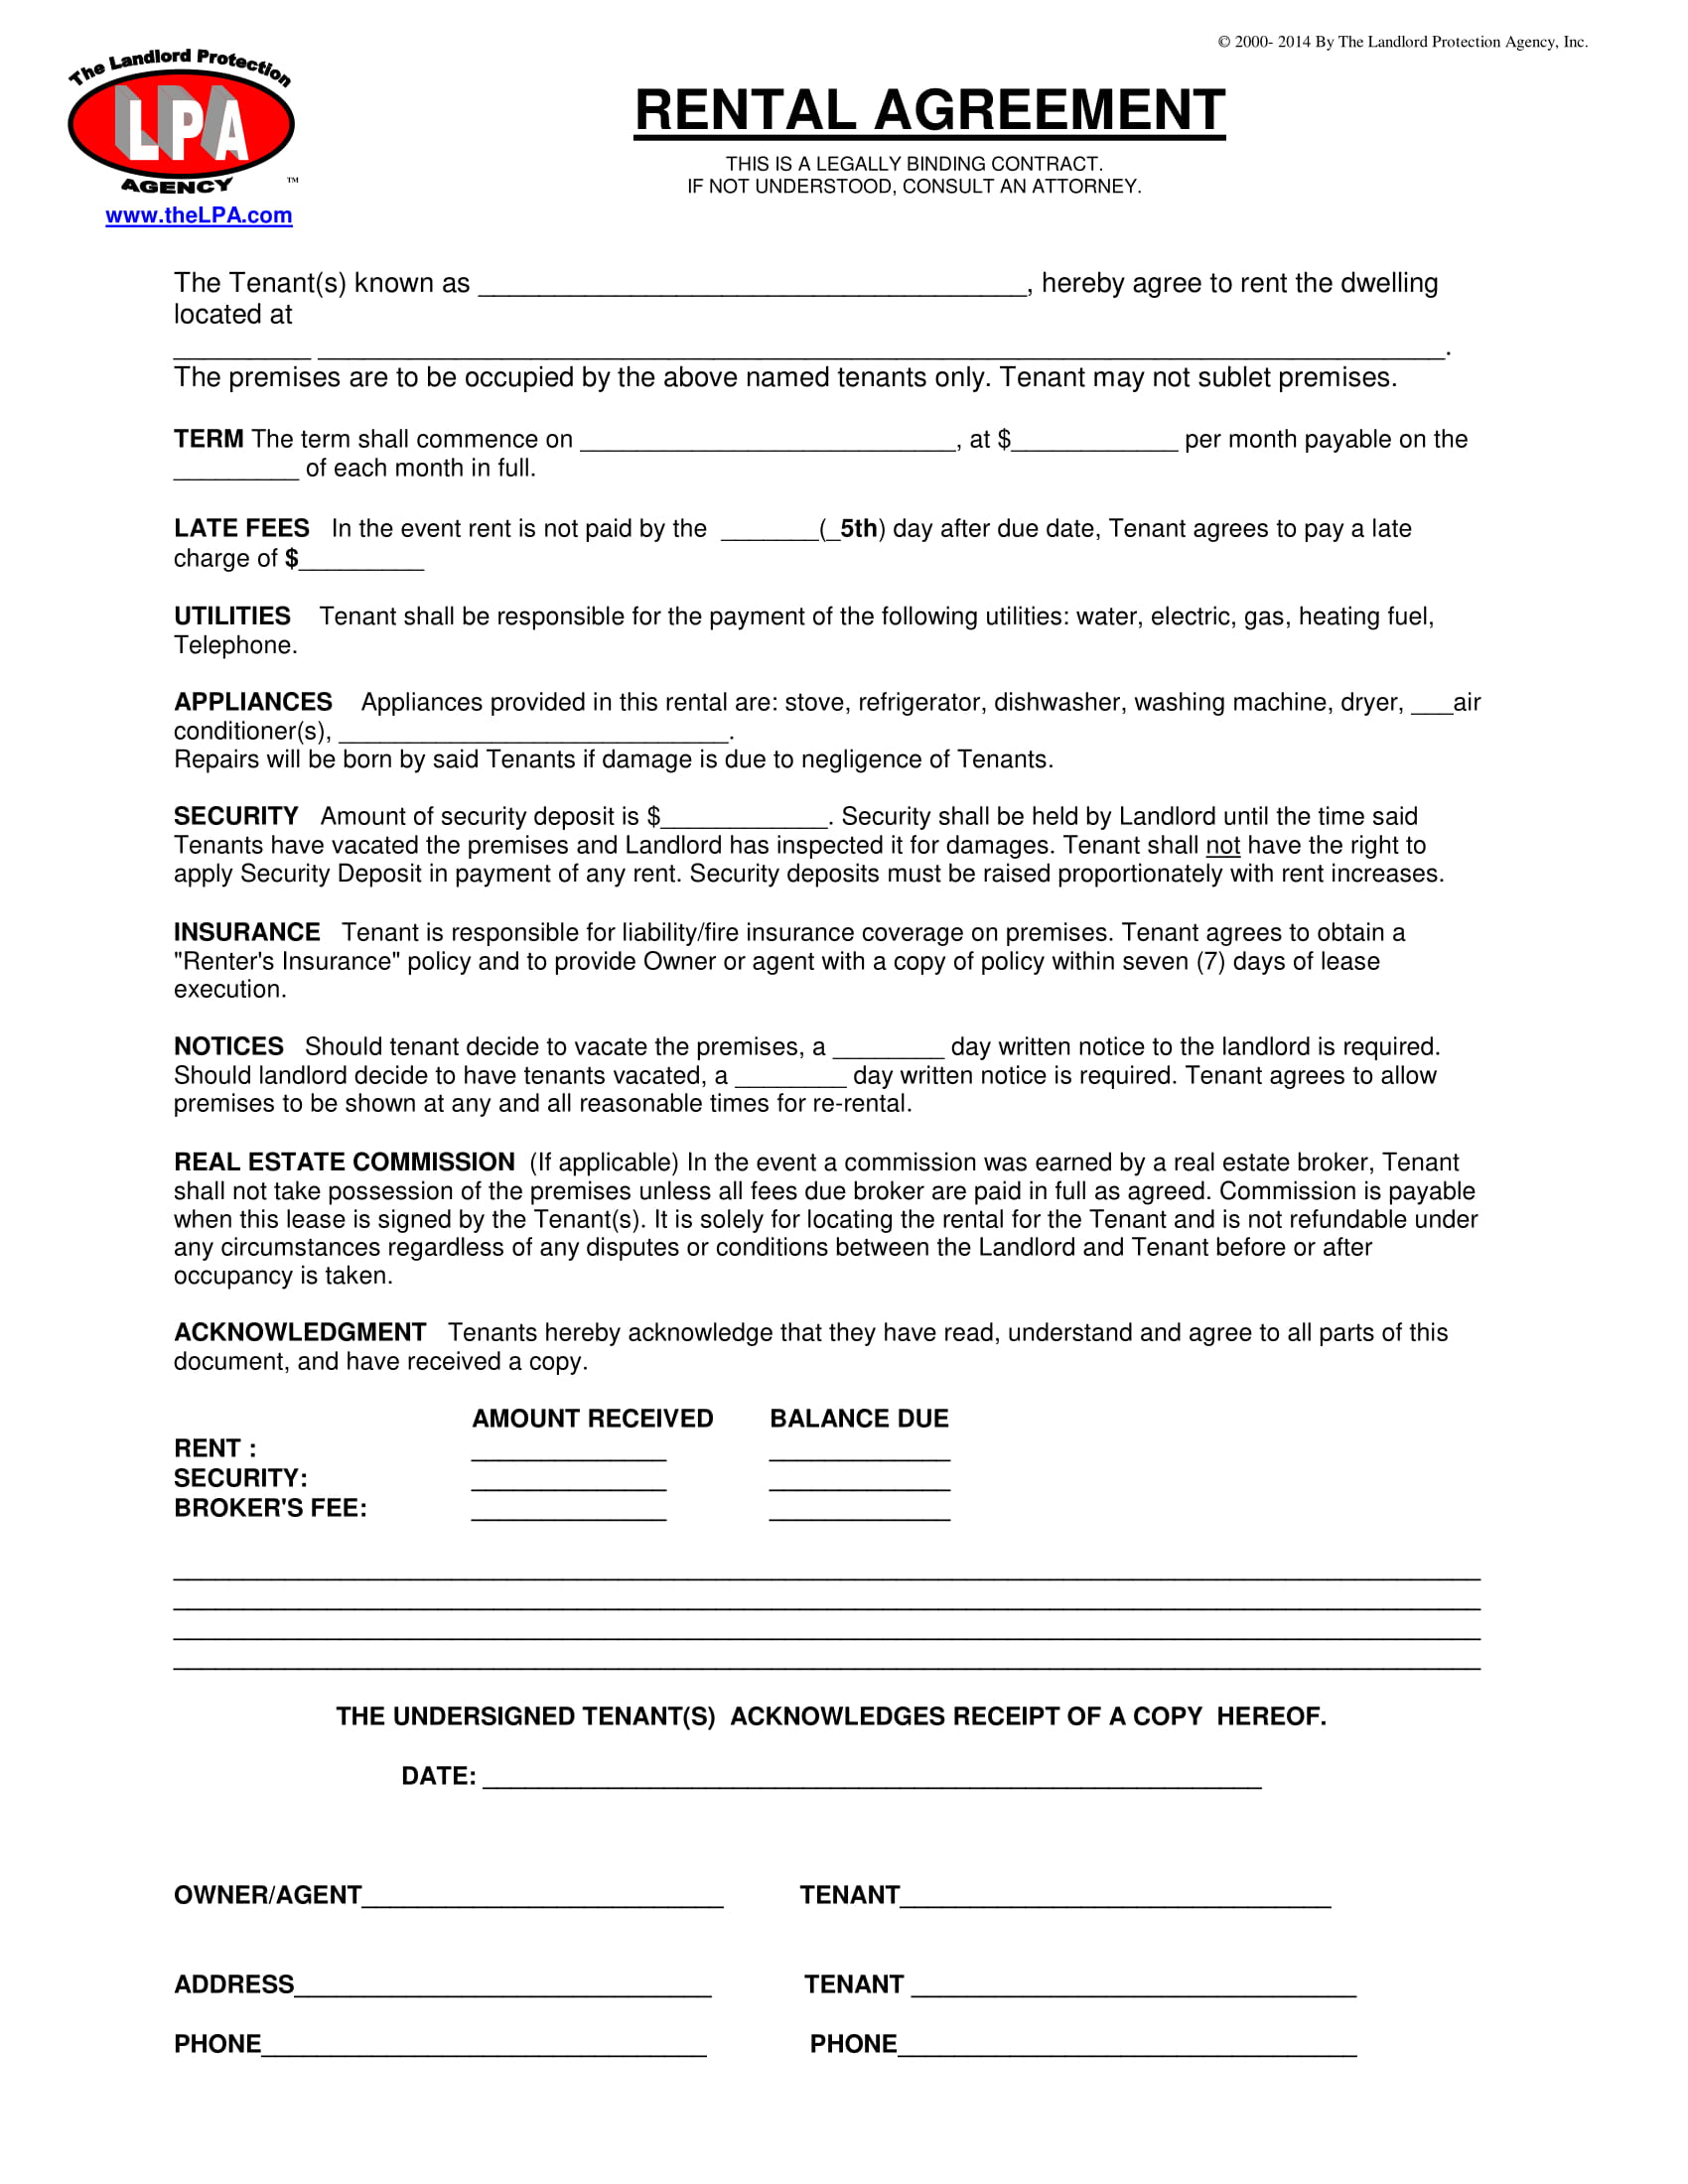 simple rental agreement letter example